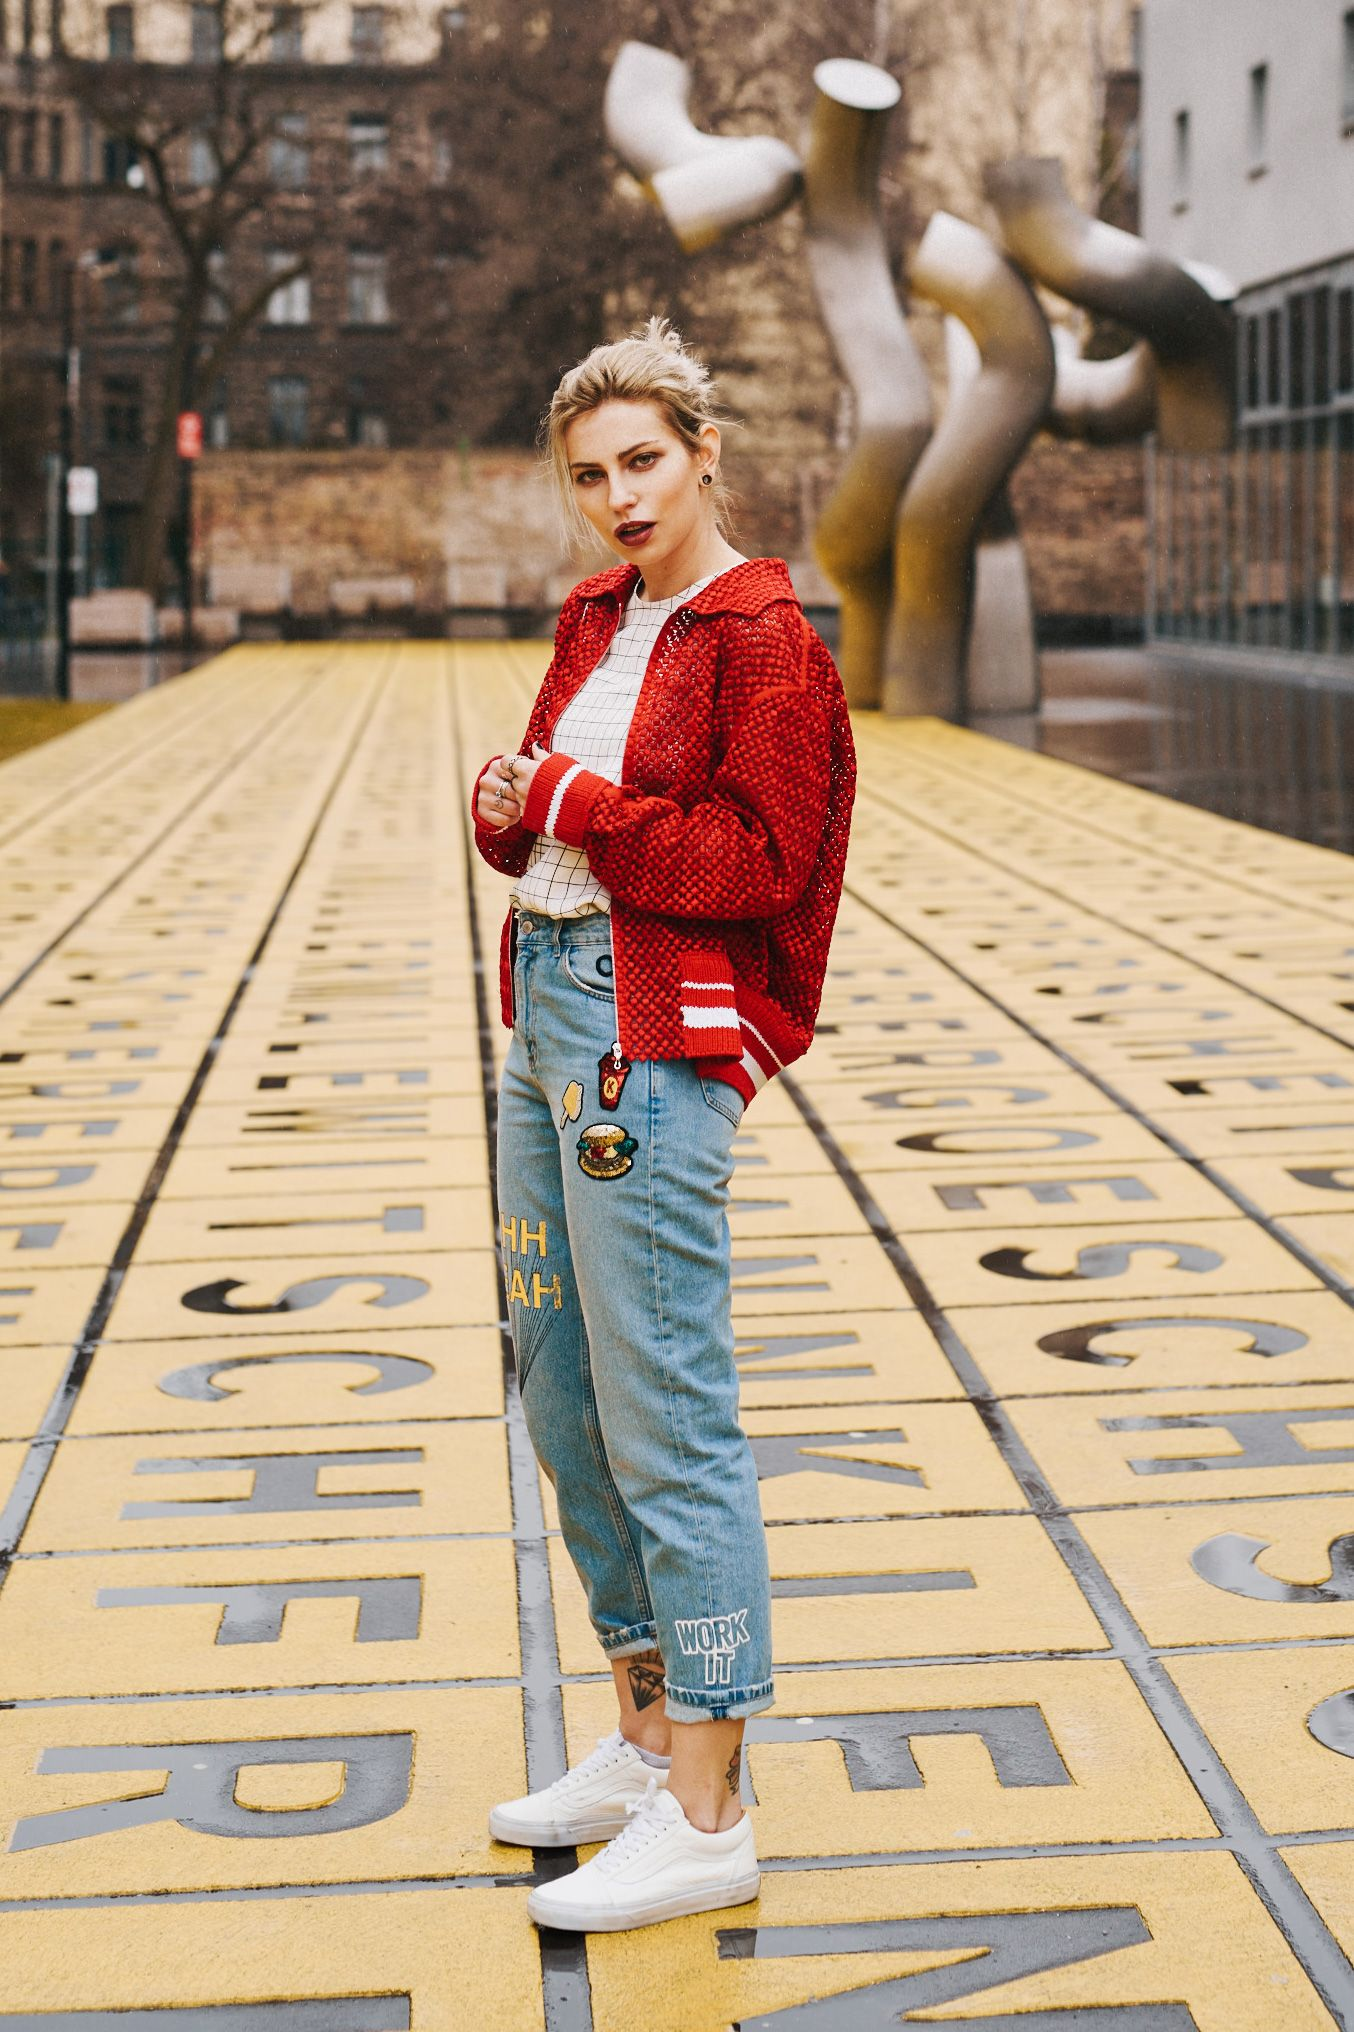 Sportliches und l ssiges herbstoutfit rote college jacke und jeans mit patches outfitinspo - Rote college jacke ...